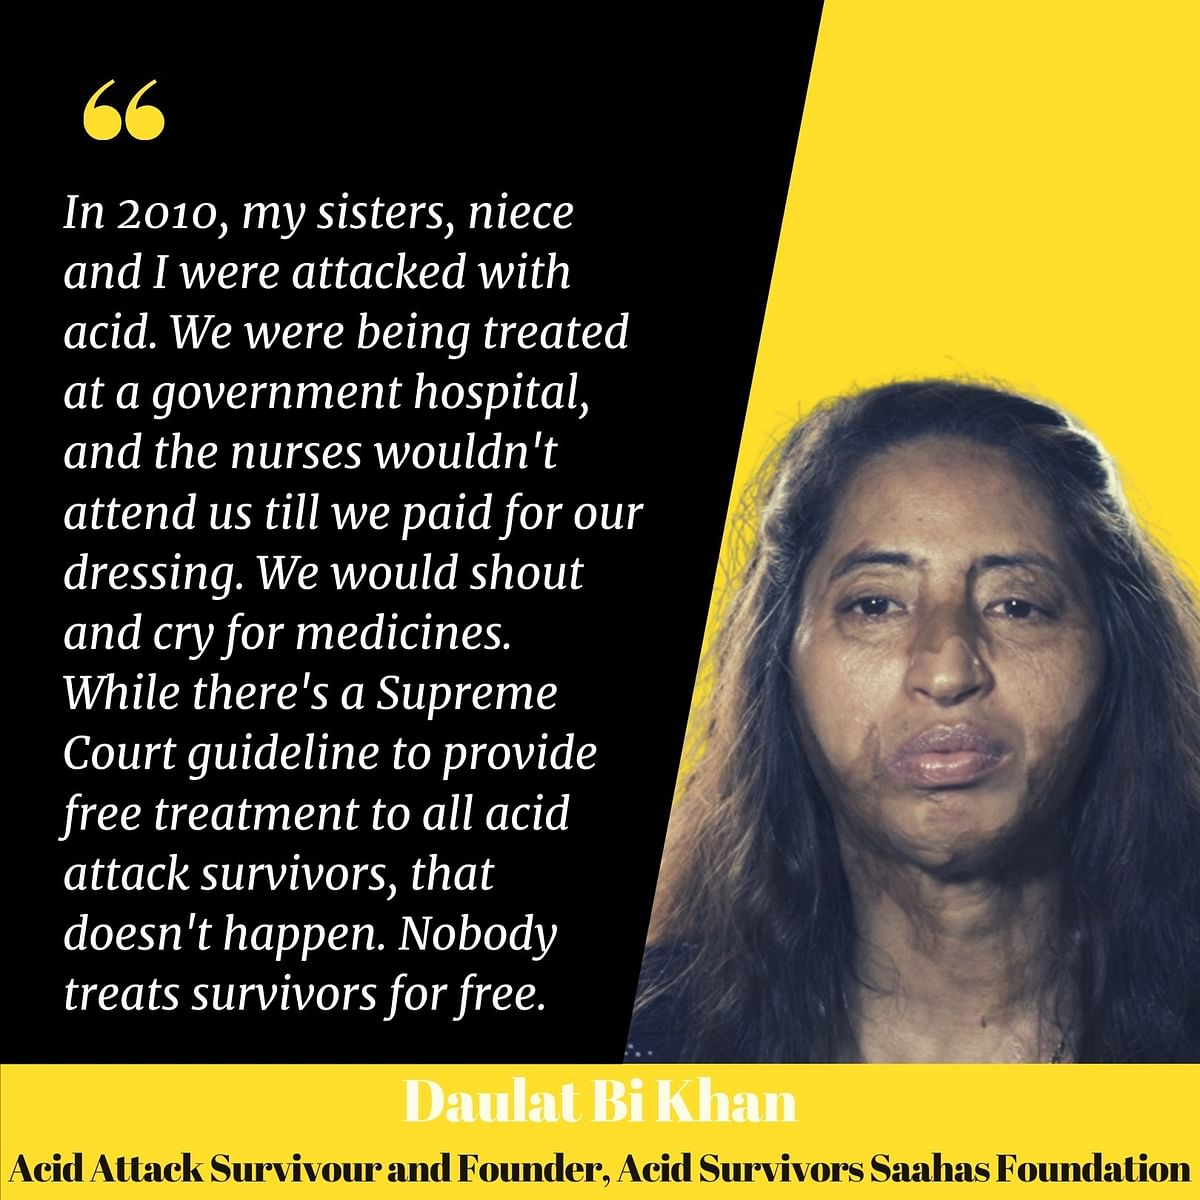 Daulat B Khan recounts her ordeal.